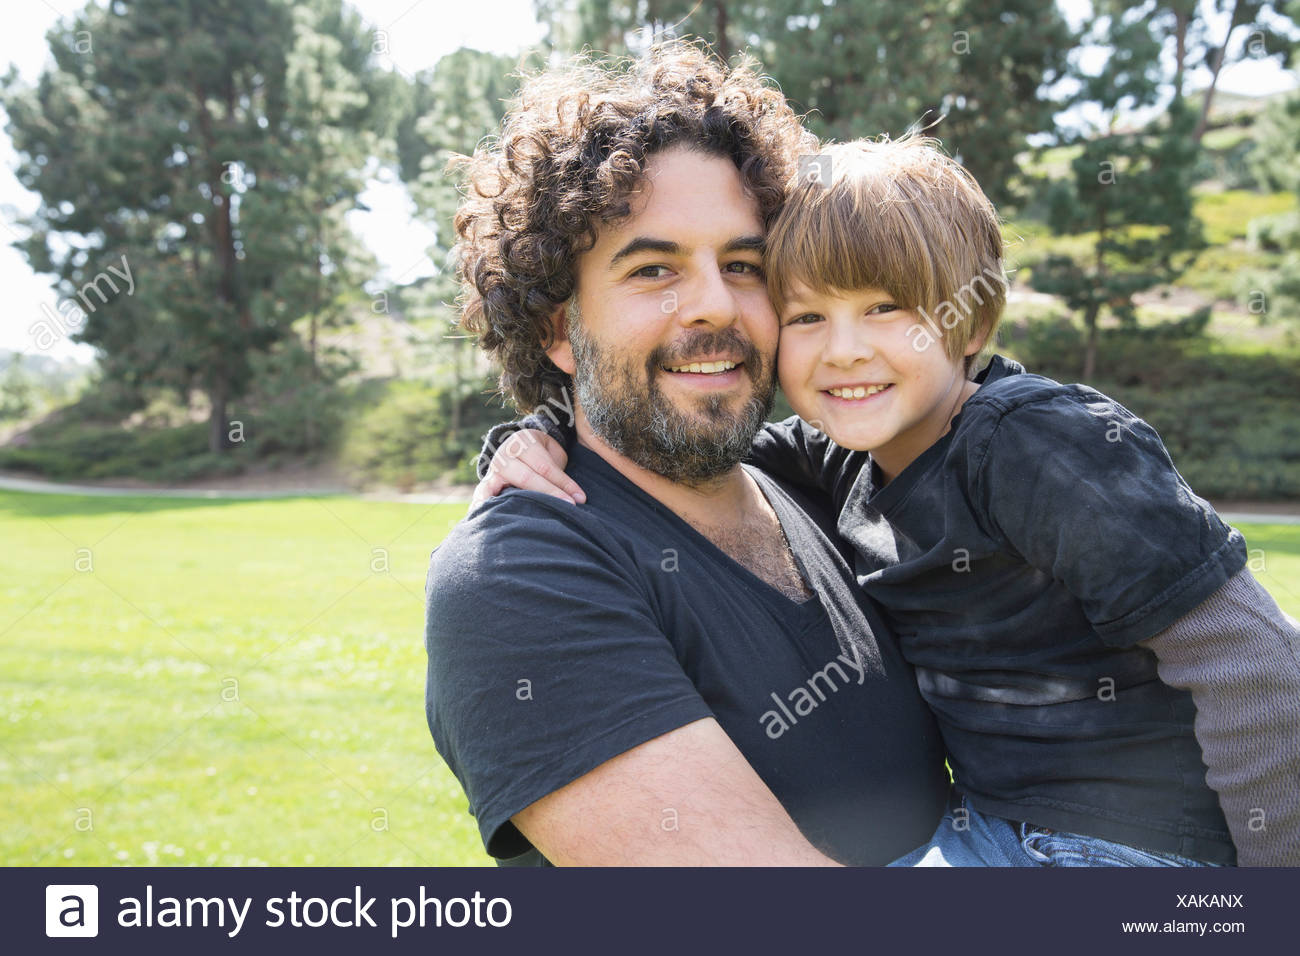 Portrait of proud father and son in park - Stock Image